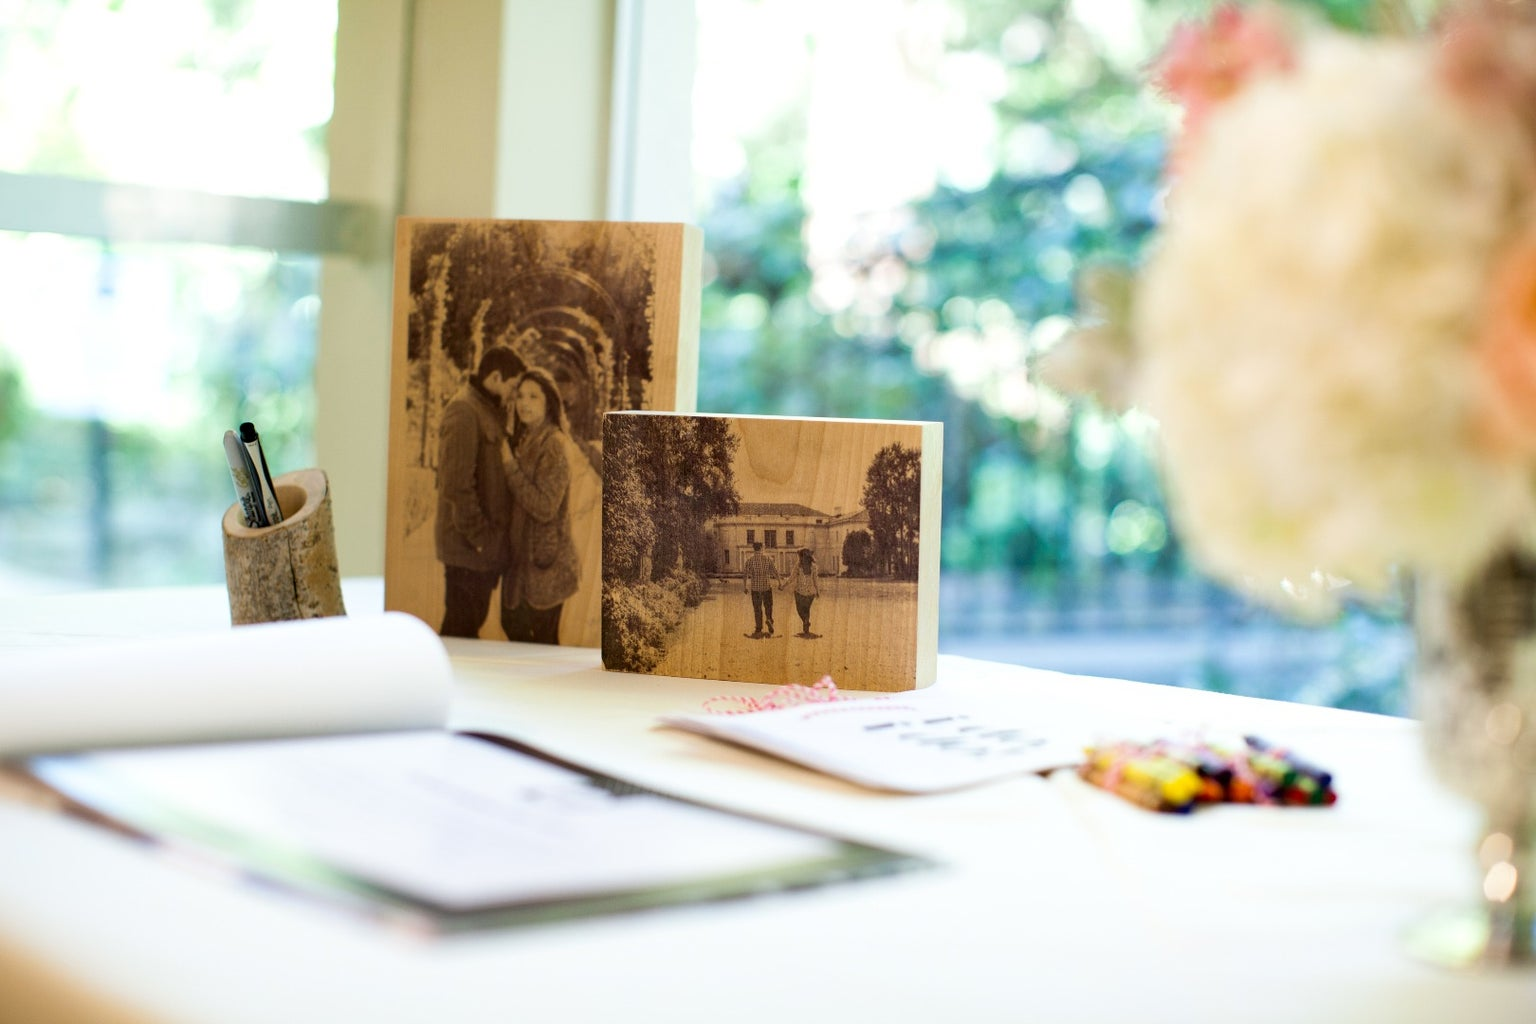 Decorate Your Wedding With Wood 8 in 1 Instructable